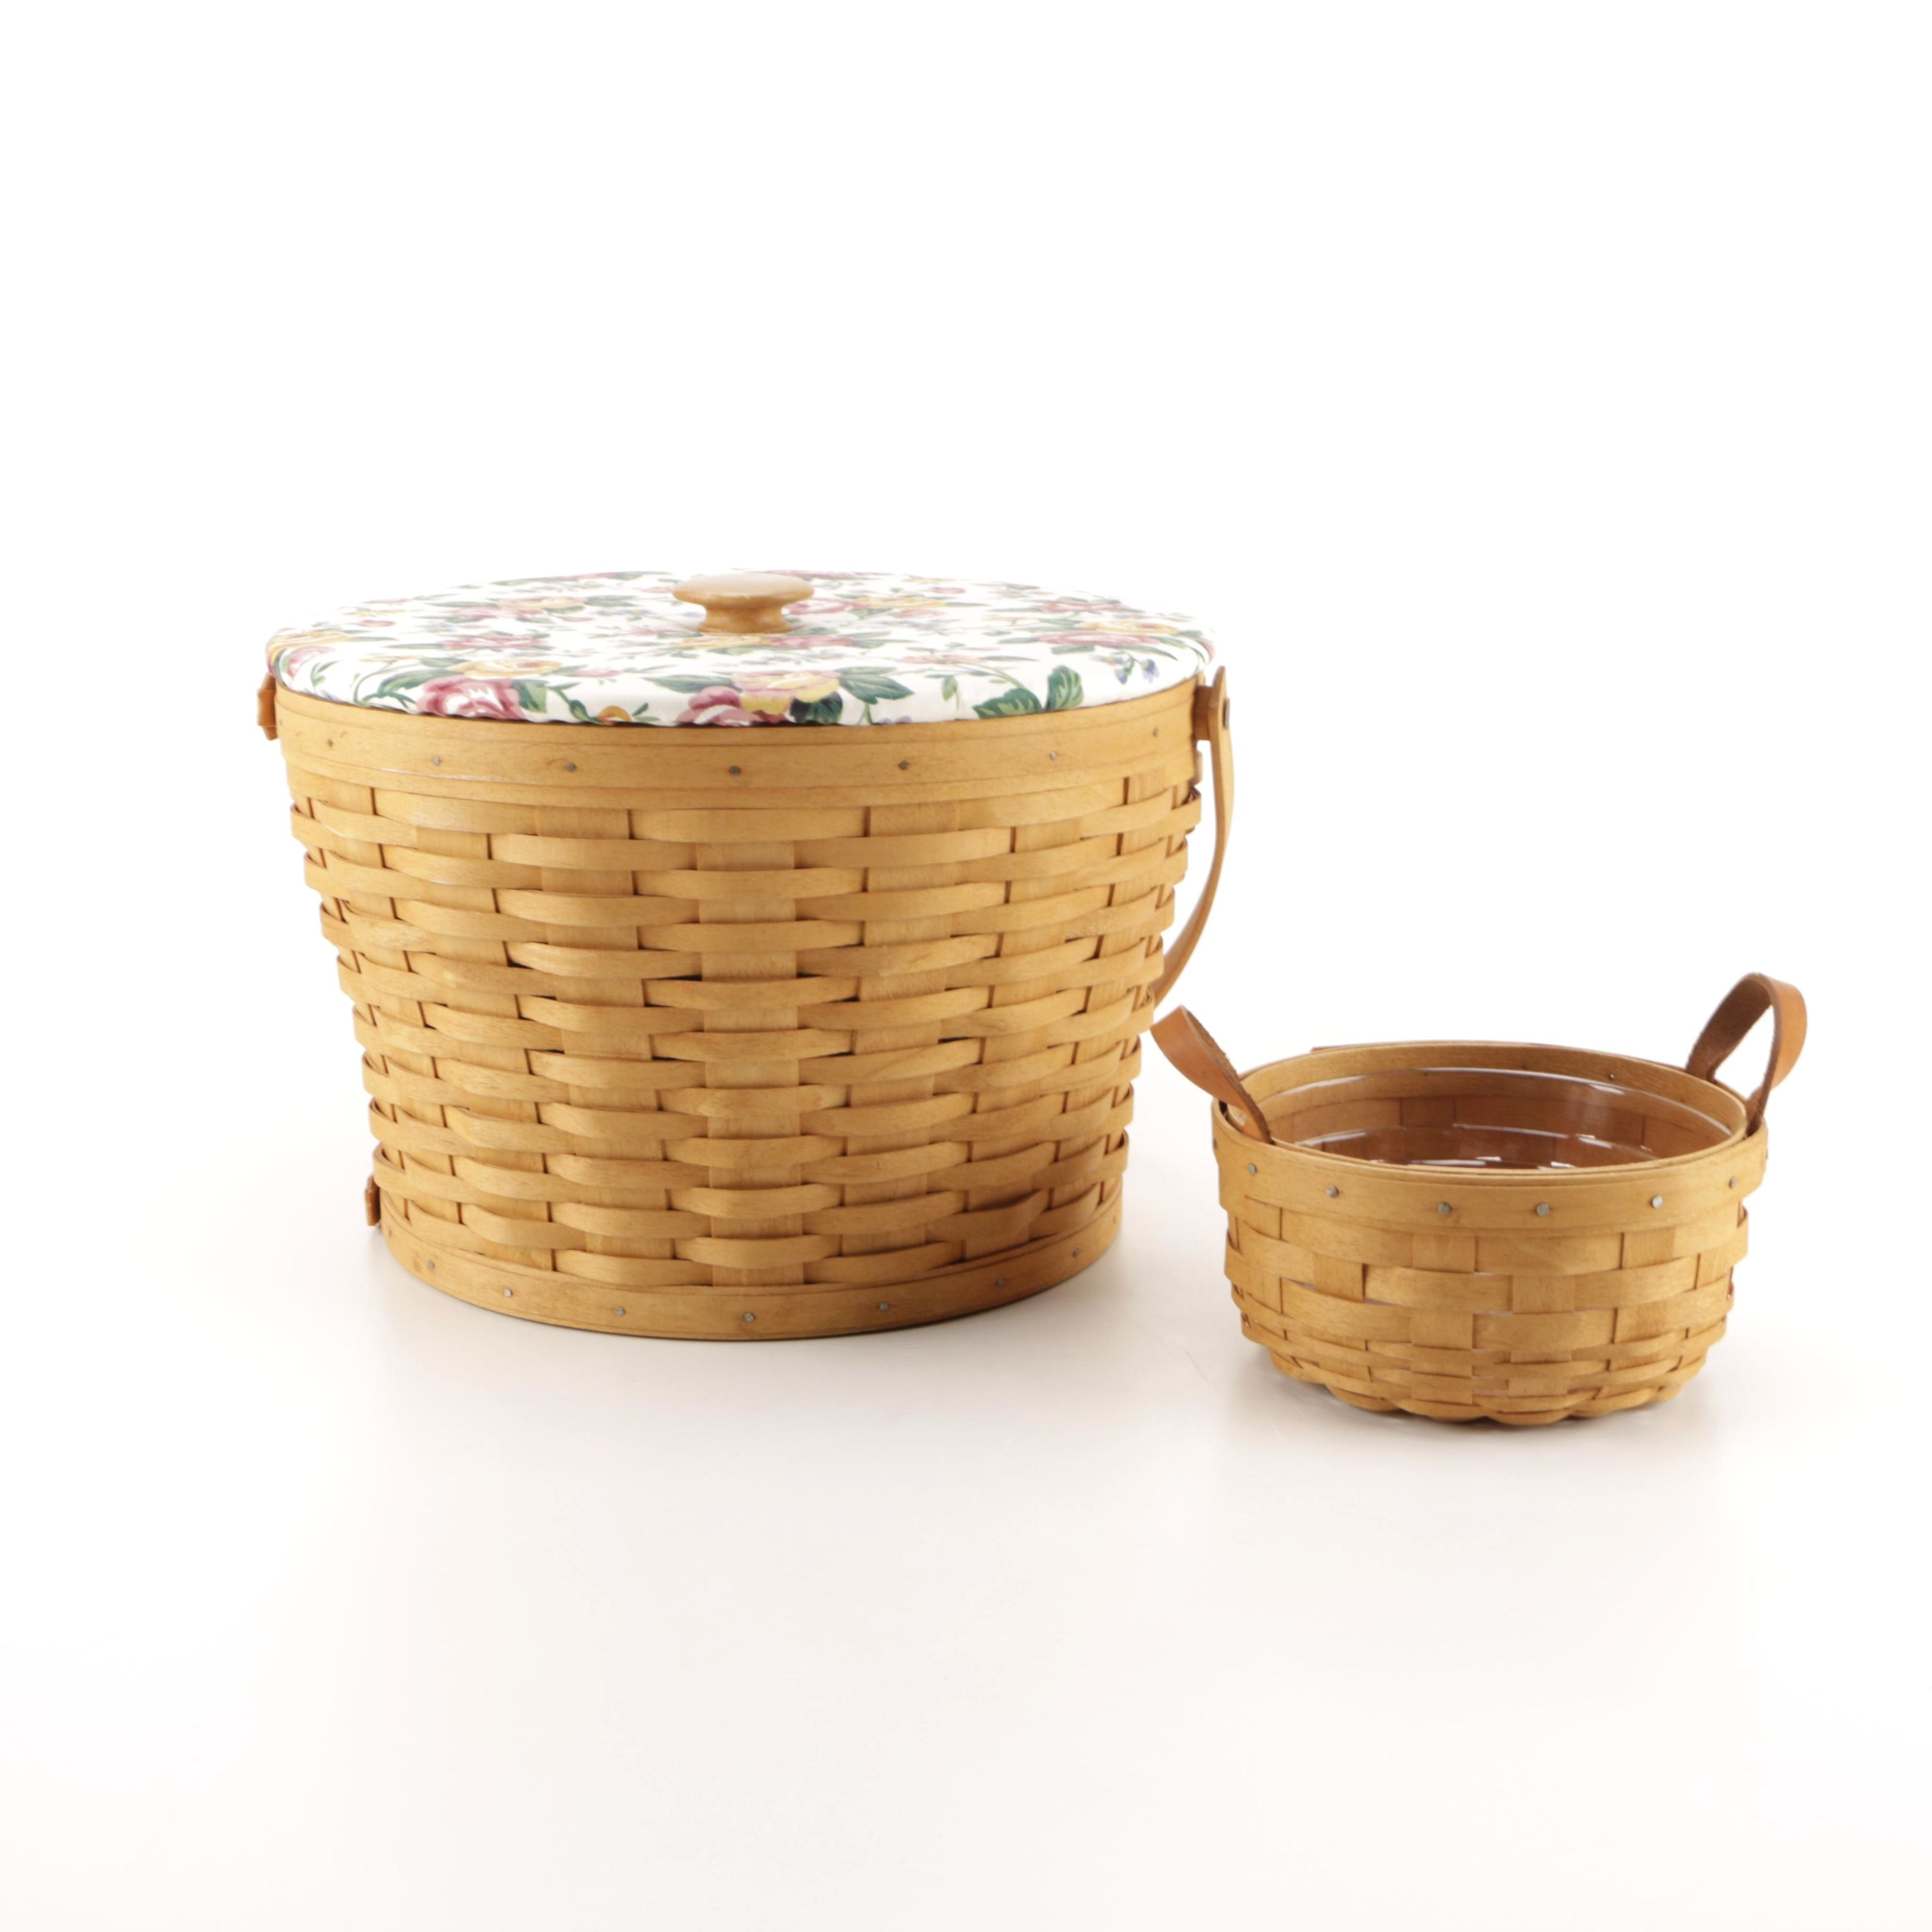 Longaberger Handwoven Sewing and Button Baskets